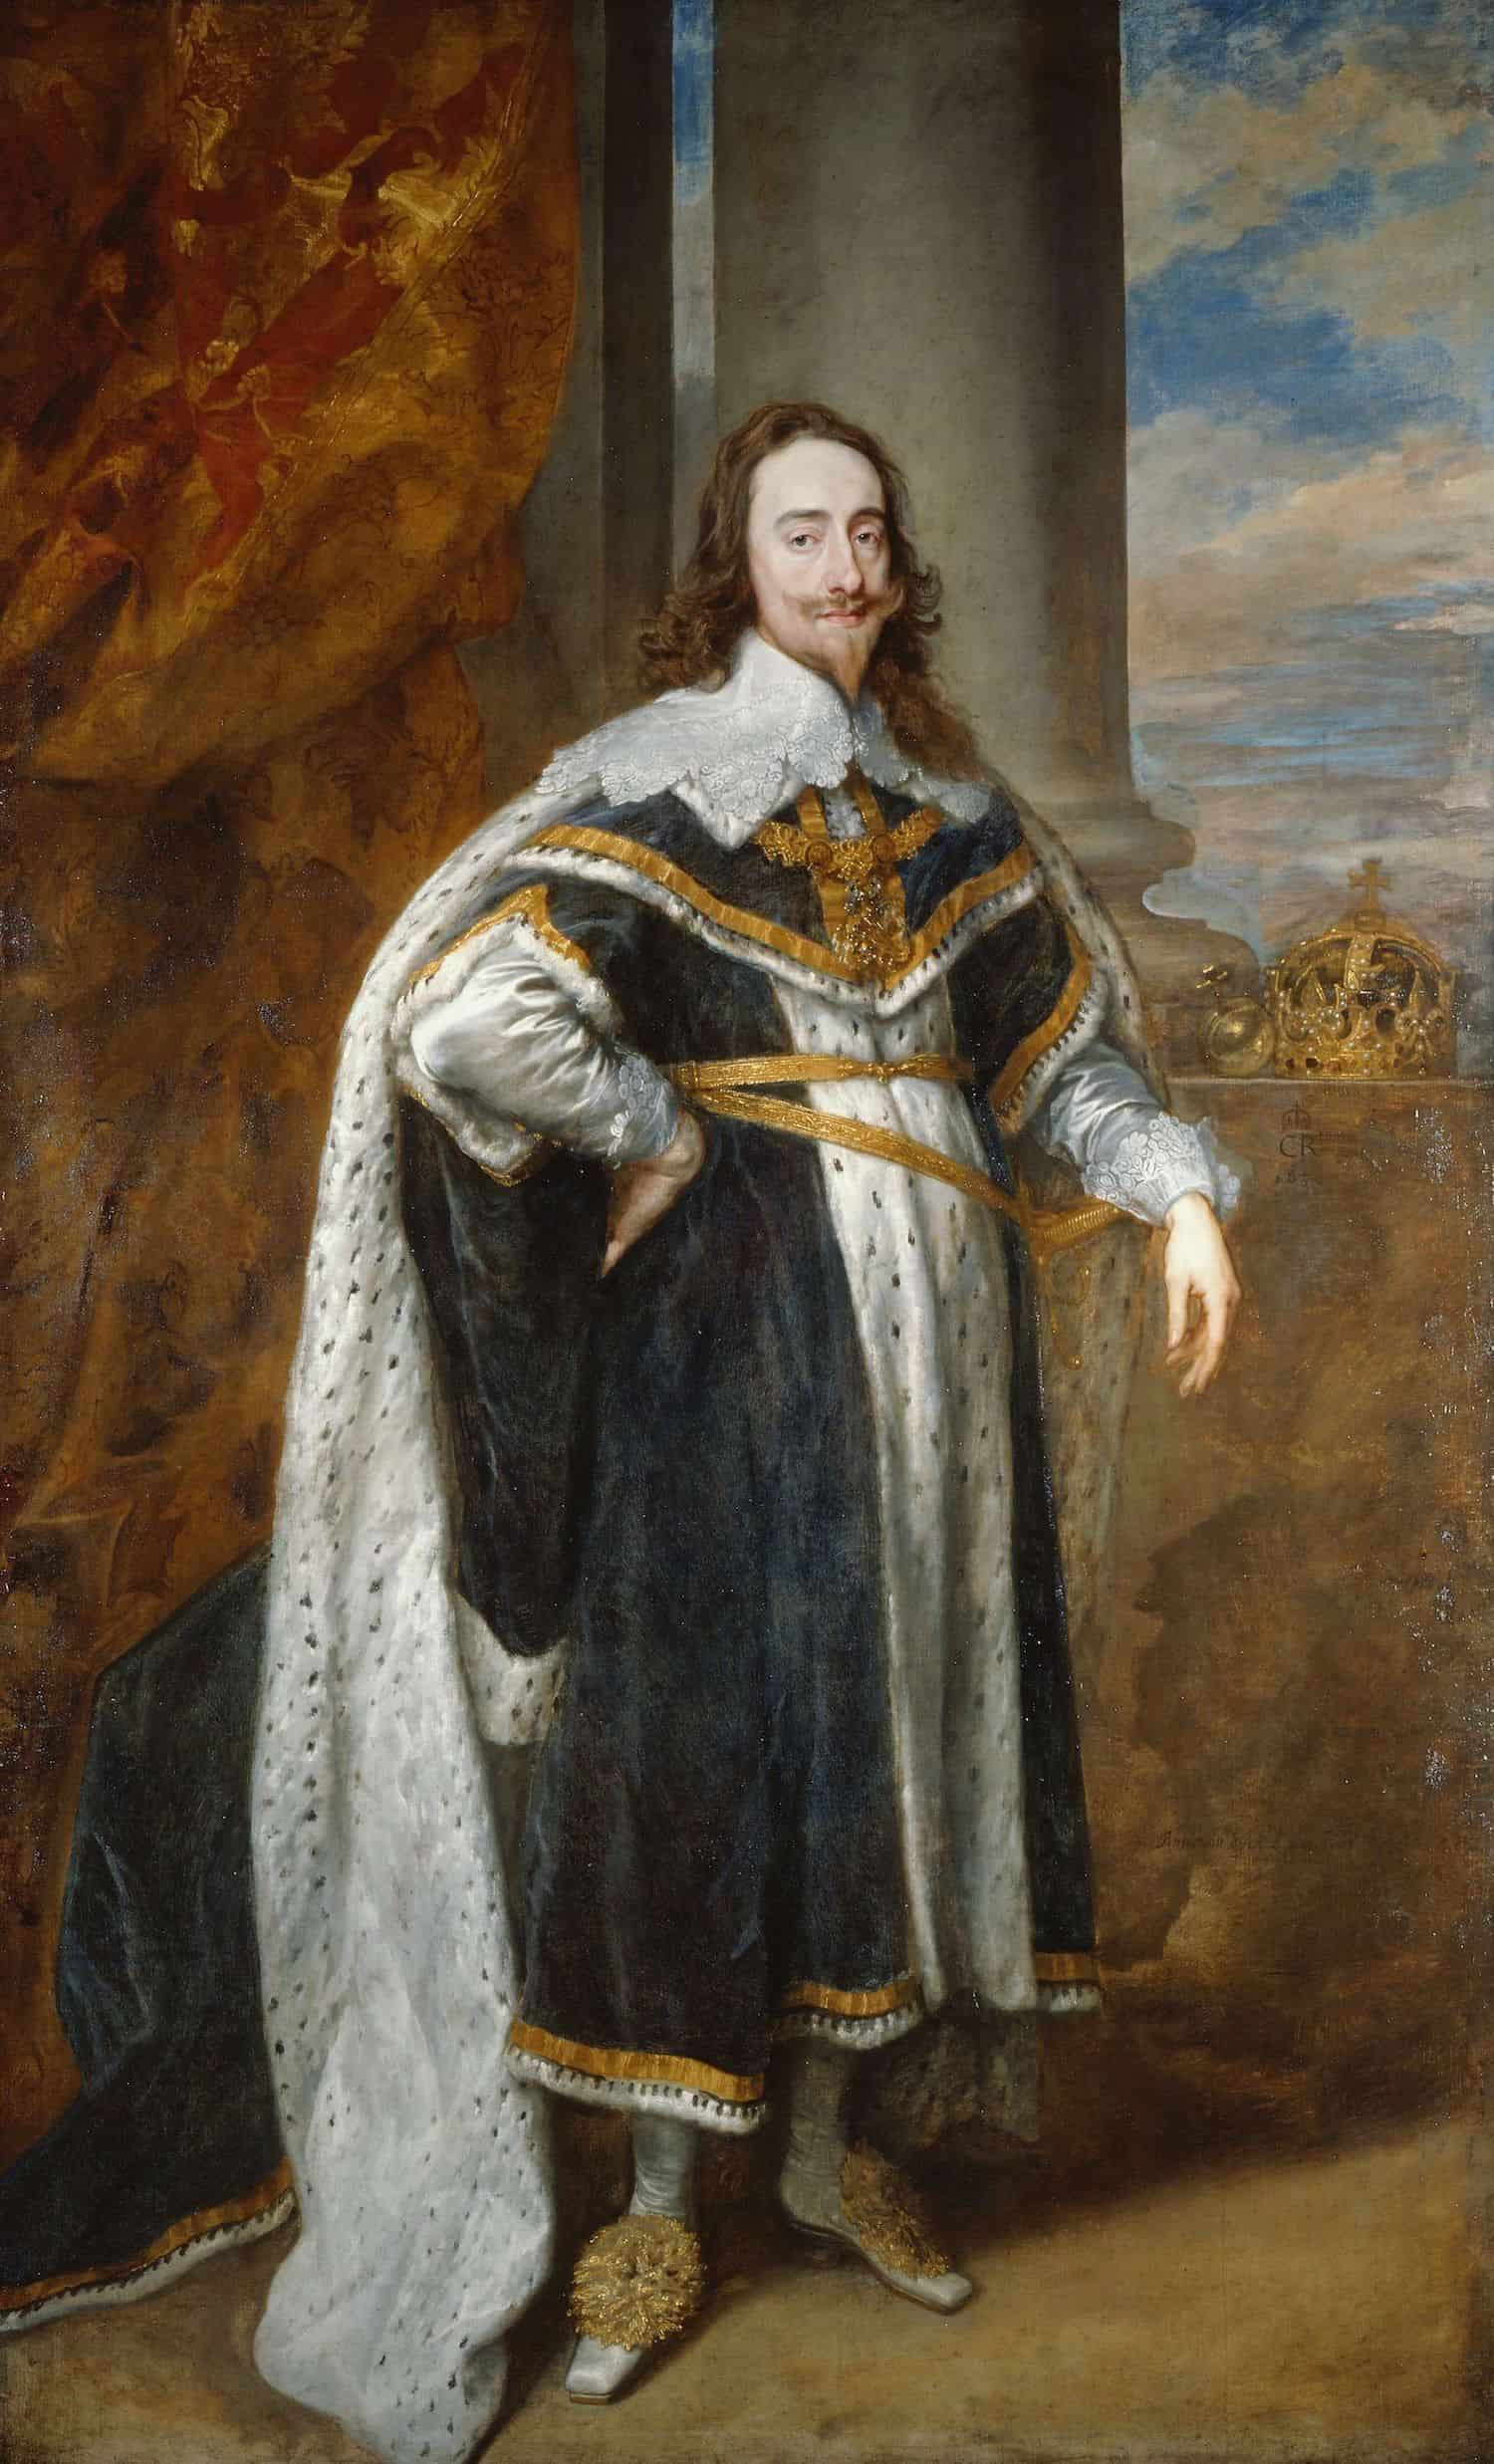 State portrait of Charles I